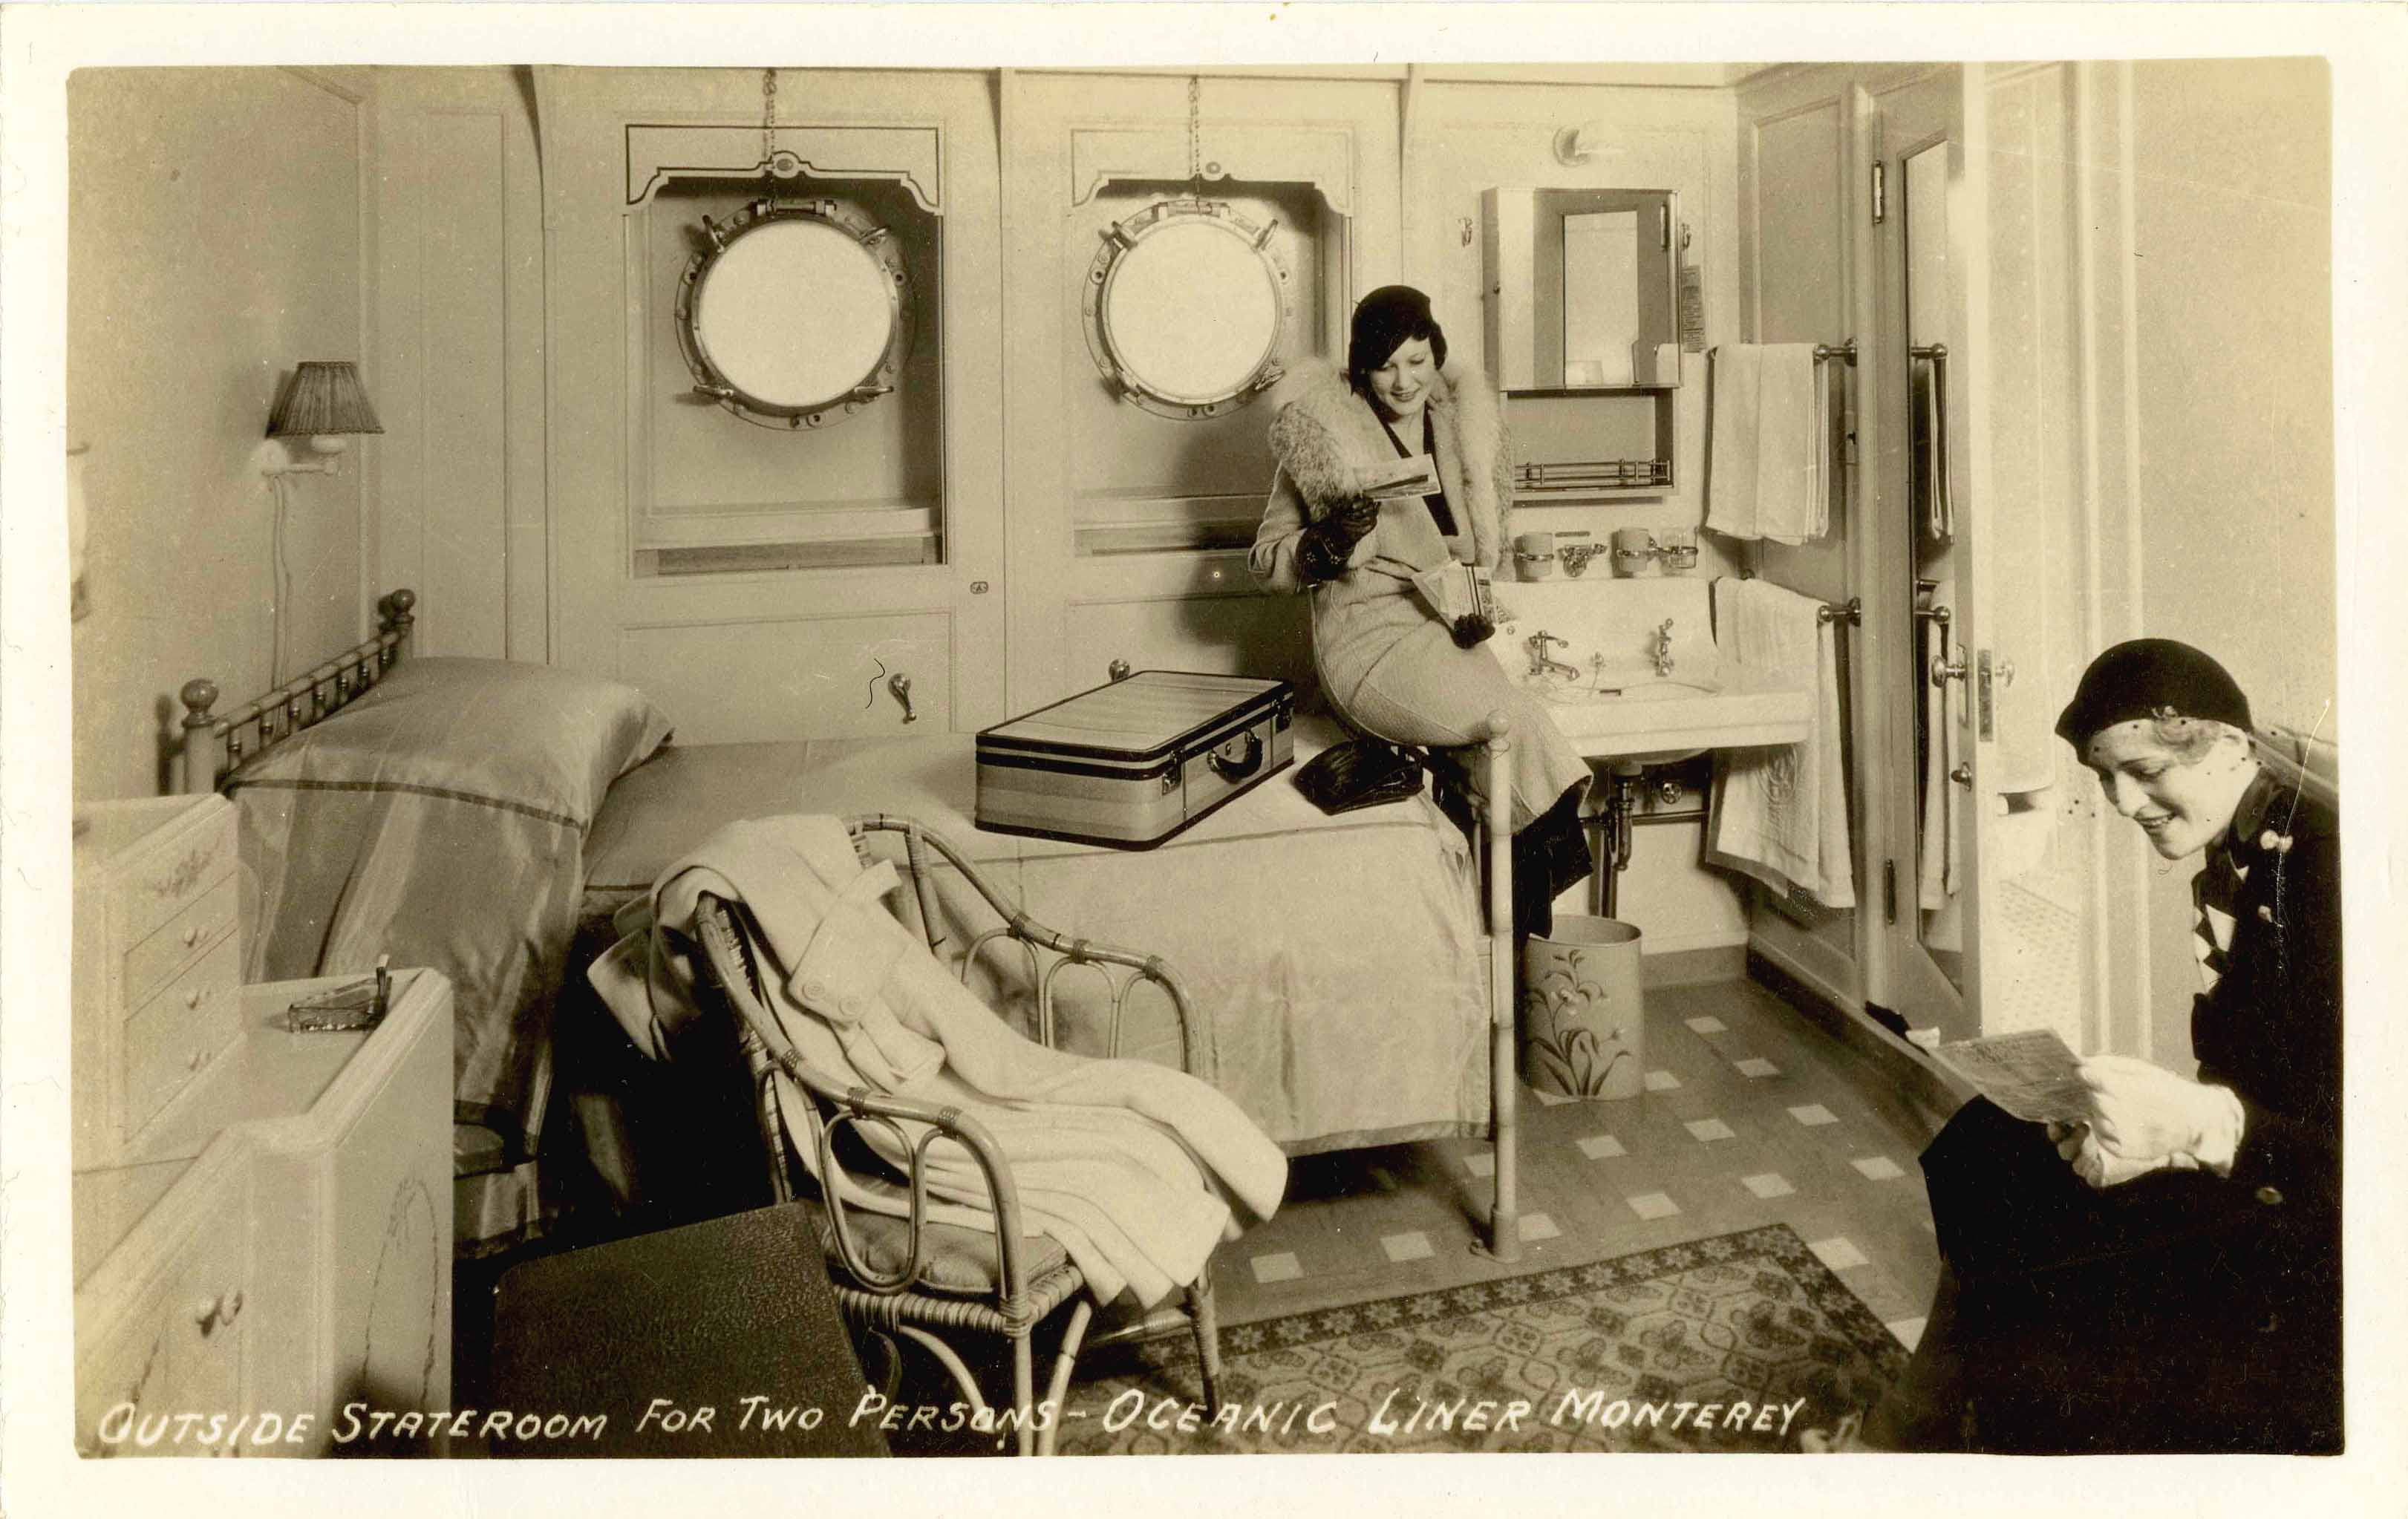 Two passengers in cabin aboard liner MONTEREY